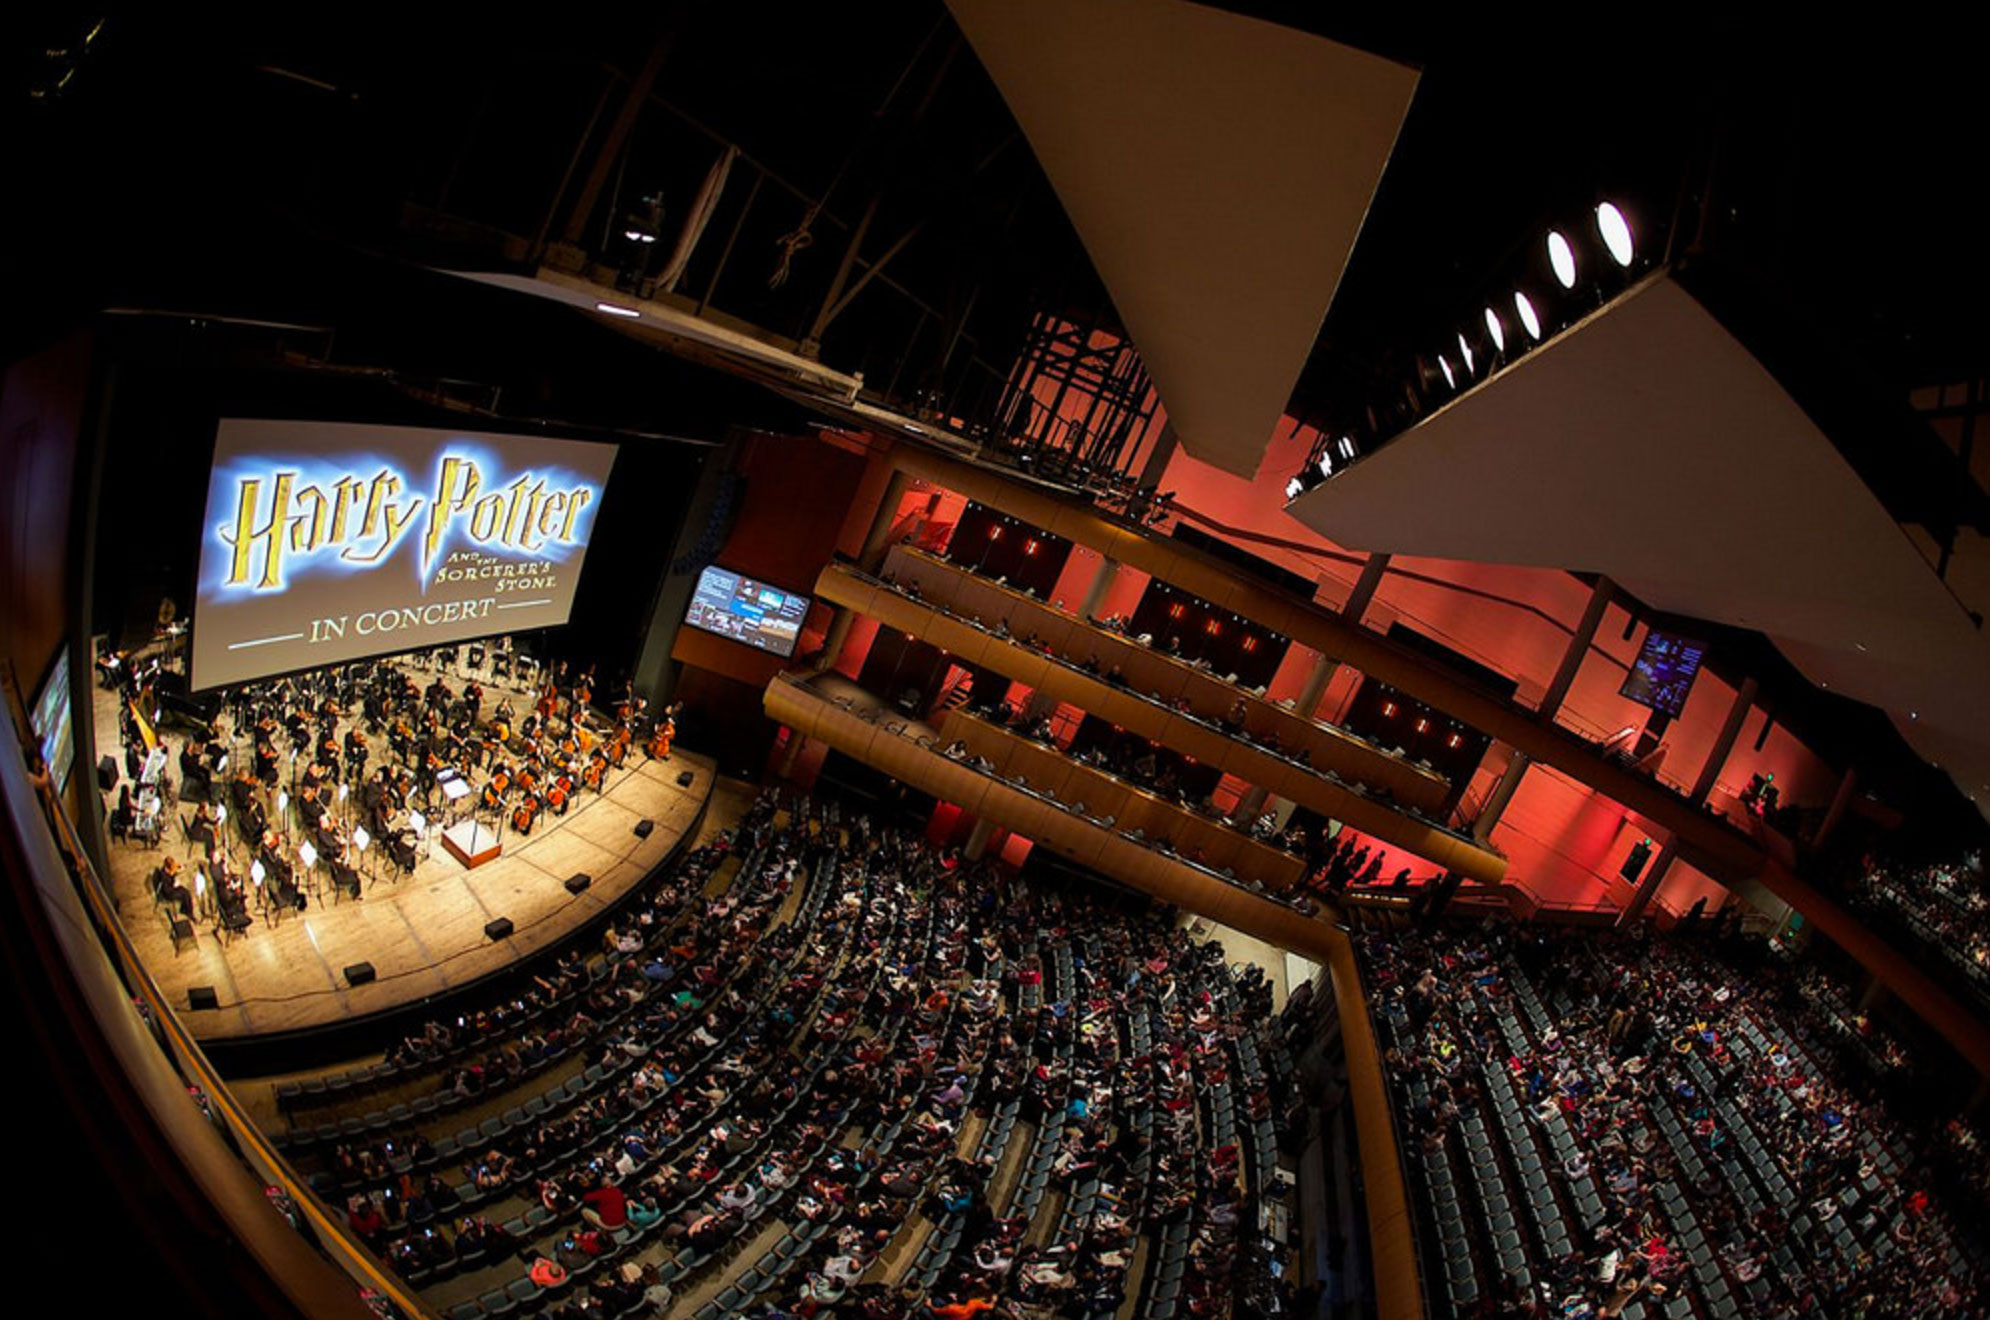 Grand Rapids Symphony continues its journey with Harry Potter this weekend.